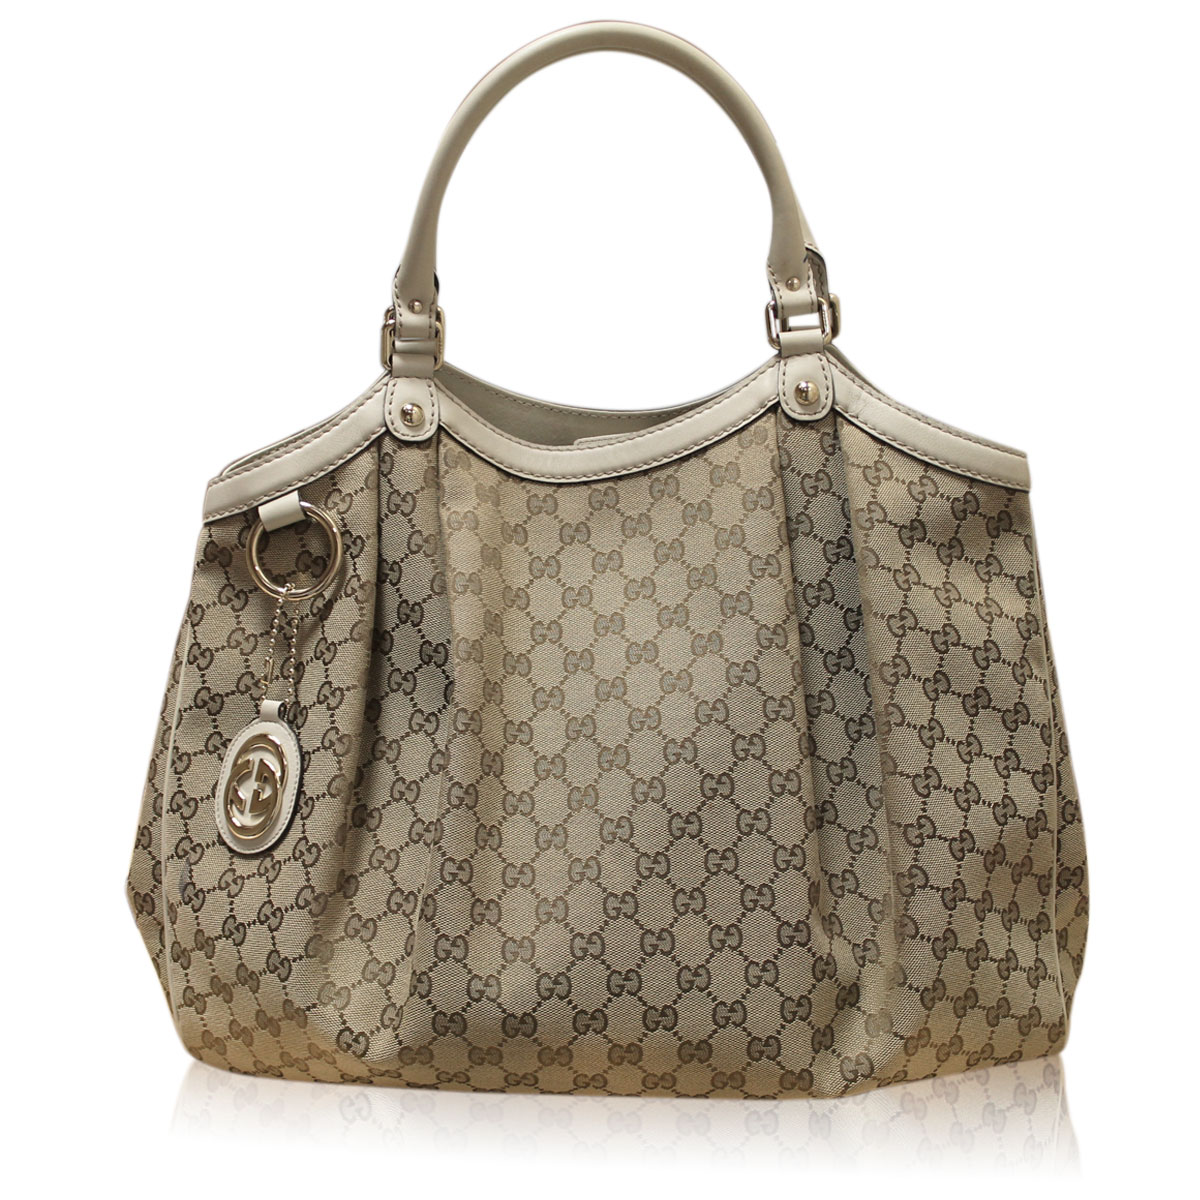 b34ed2a05639 Gucci Sukey Monogram Canvas Off White Leather Large Tote